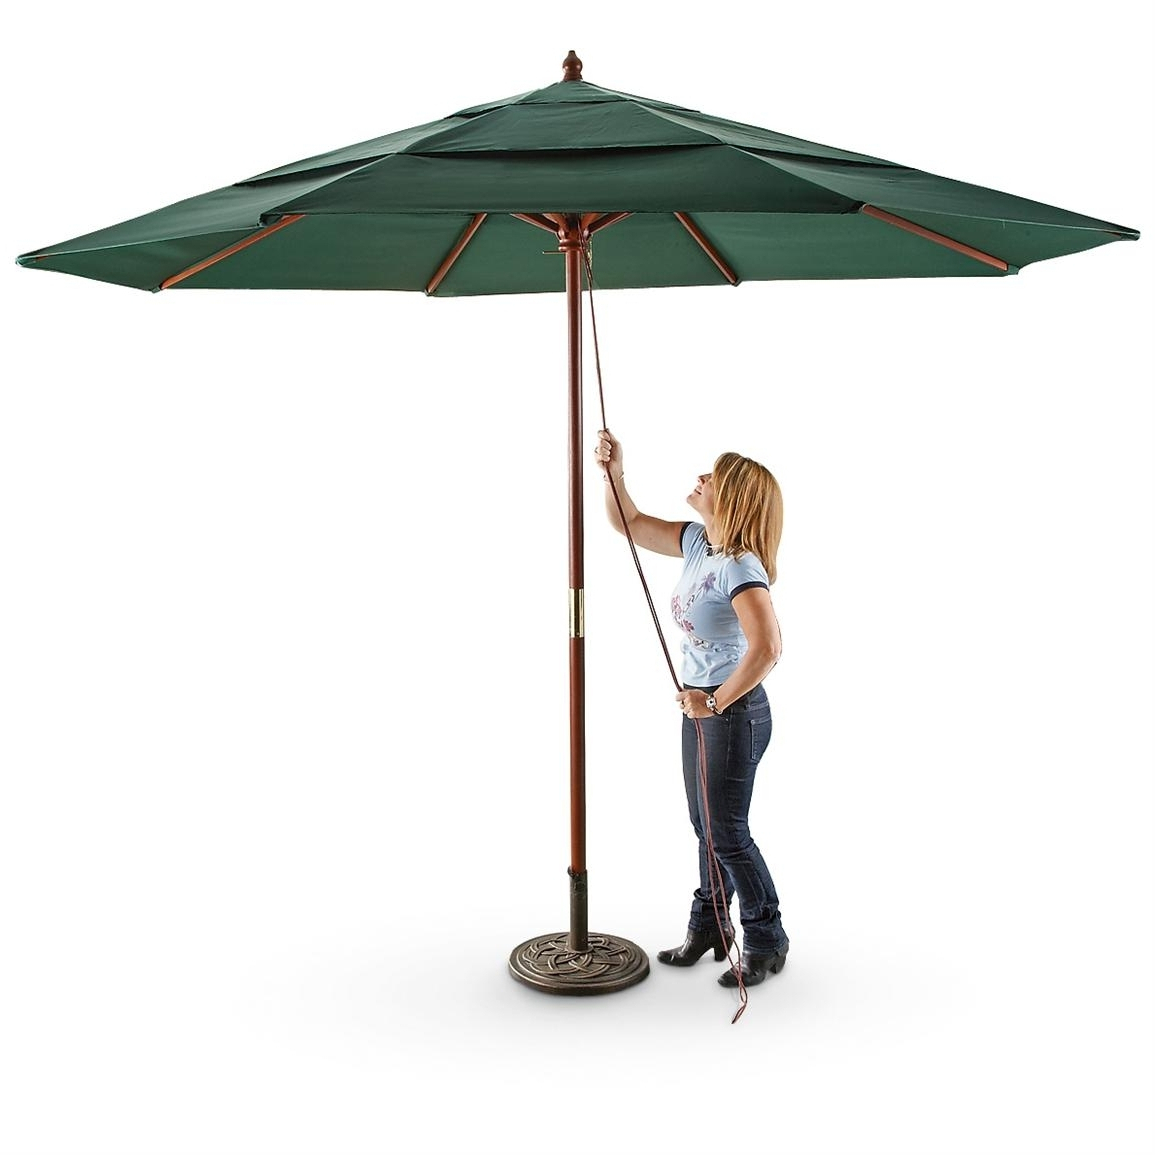 20 Best Collection Of Drape Patio Umbrellas Within Most Recent Drape Umbrellas (Gallery 20 of 20)